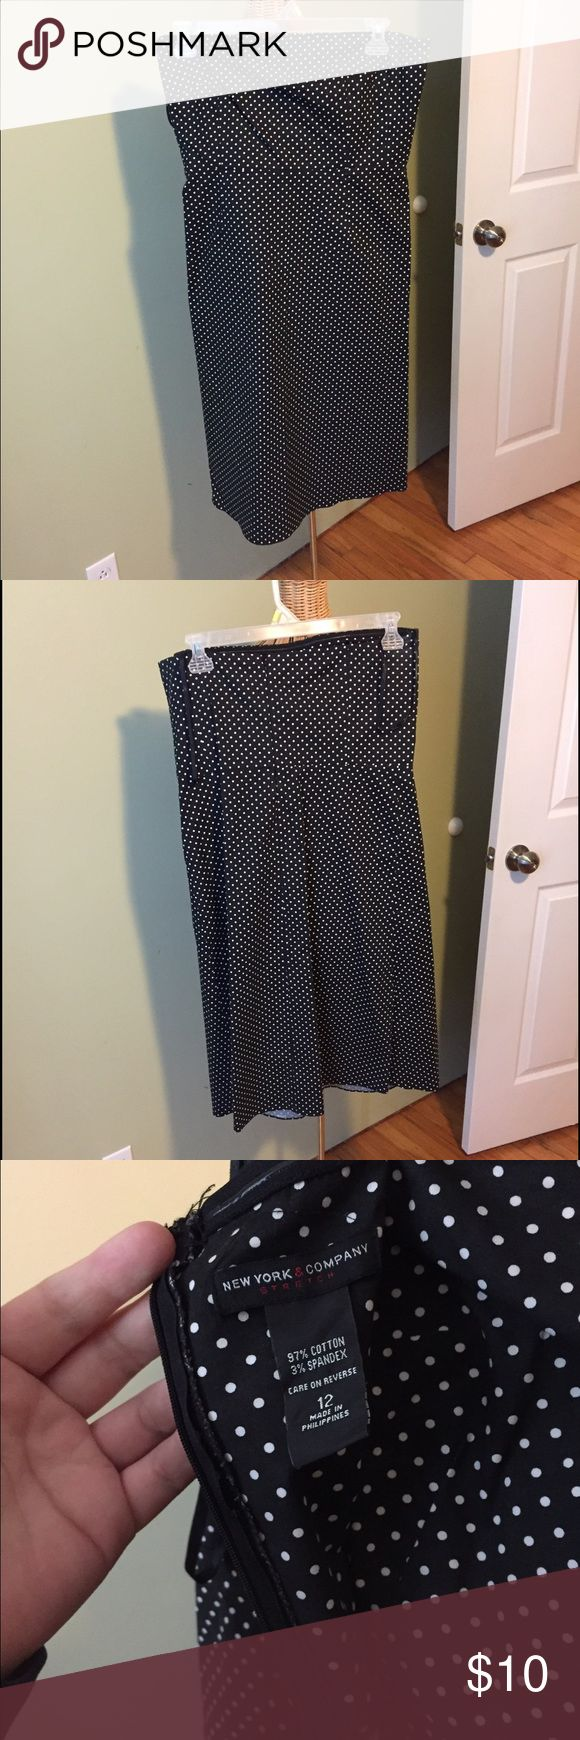 New York & Company Dress Strapless polka dot dress. So cute, very flattering and in great condition! New York & Company Dresses Strapless